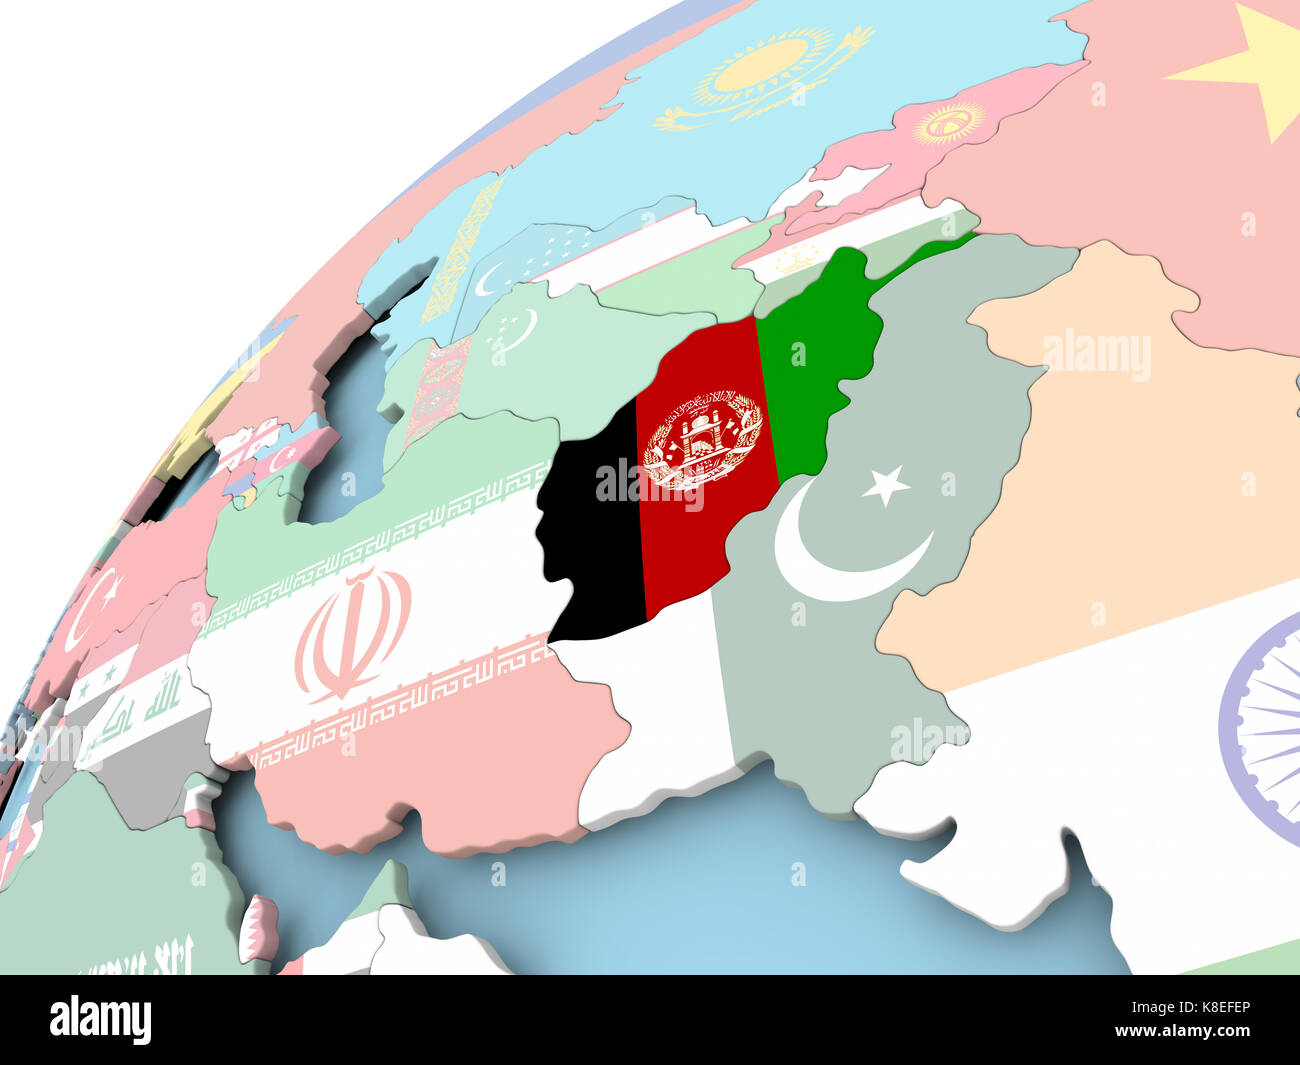 Map of Afghanistan on political globe with embedded flag. 3D ... Afghanistan On Map on israel on map, yemen on map, iran on map, lebanon map, sudan on map, egypt on map, himalayas on map, congo on map, malaysia on map, north korea on map, mongolia on map, bangladesh on map, bhutan on map, indonesia on map, pakistan on map, thailand on map, nepal on map, armenia on map, the arabian sea on map, kuwait on map,